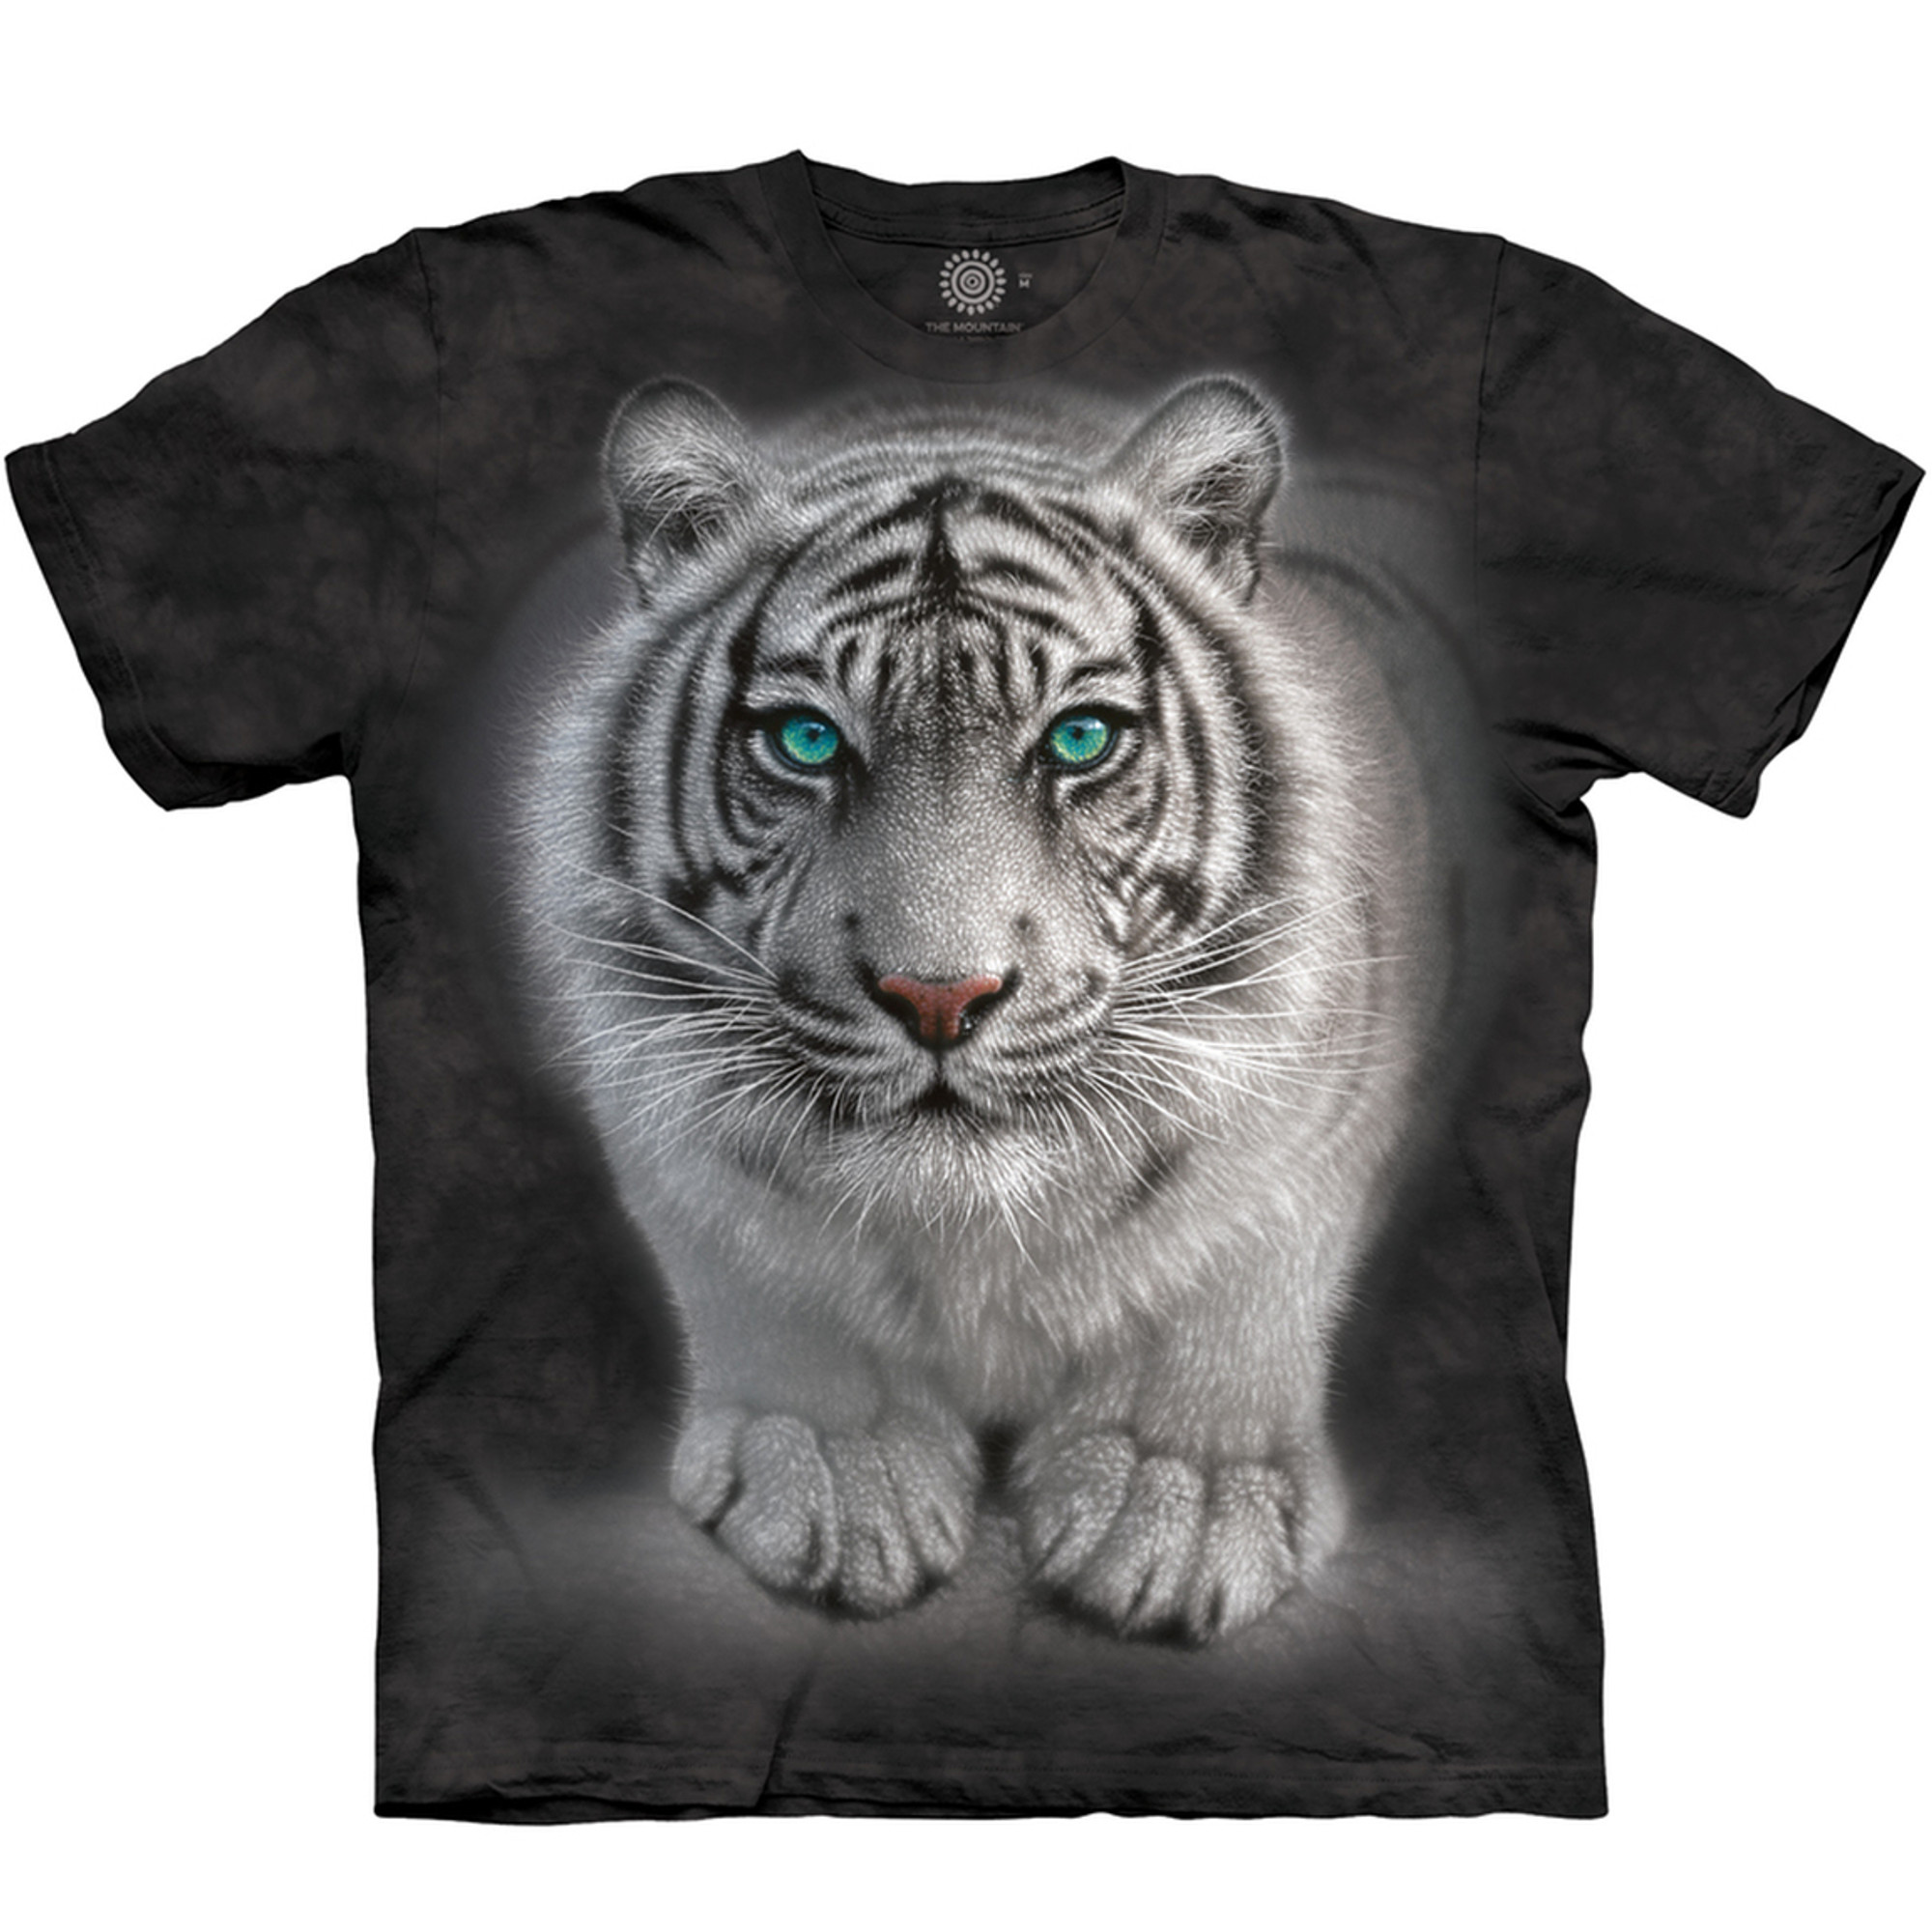 Wild Intentions T-Shirt By The Mountain 100/% Cotton Tee Shirt